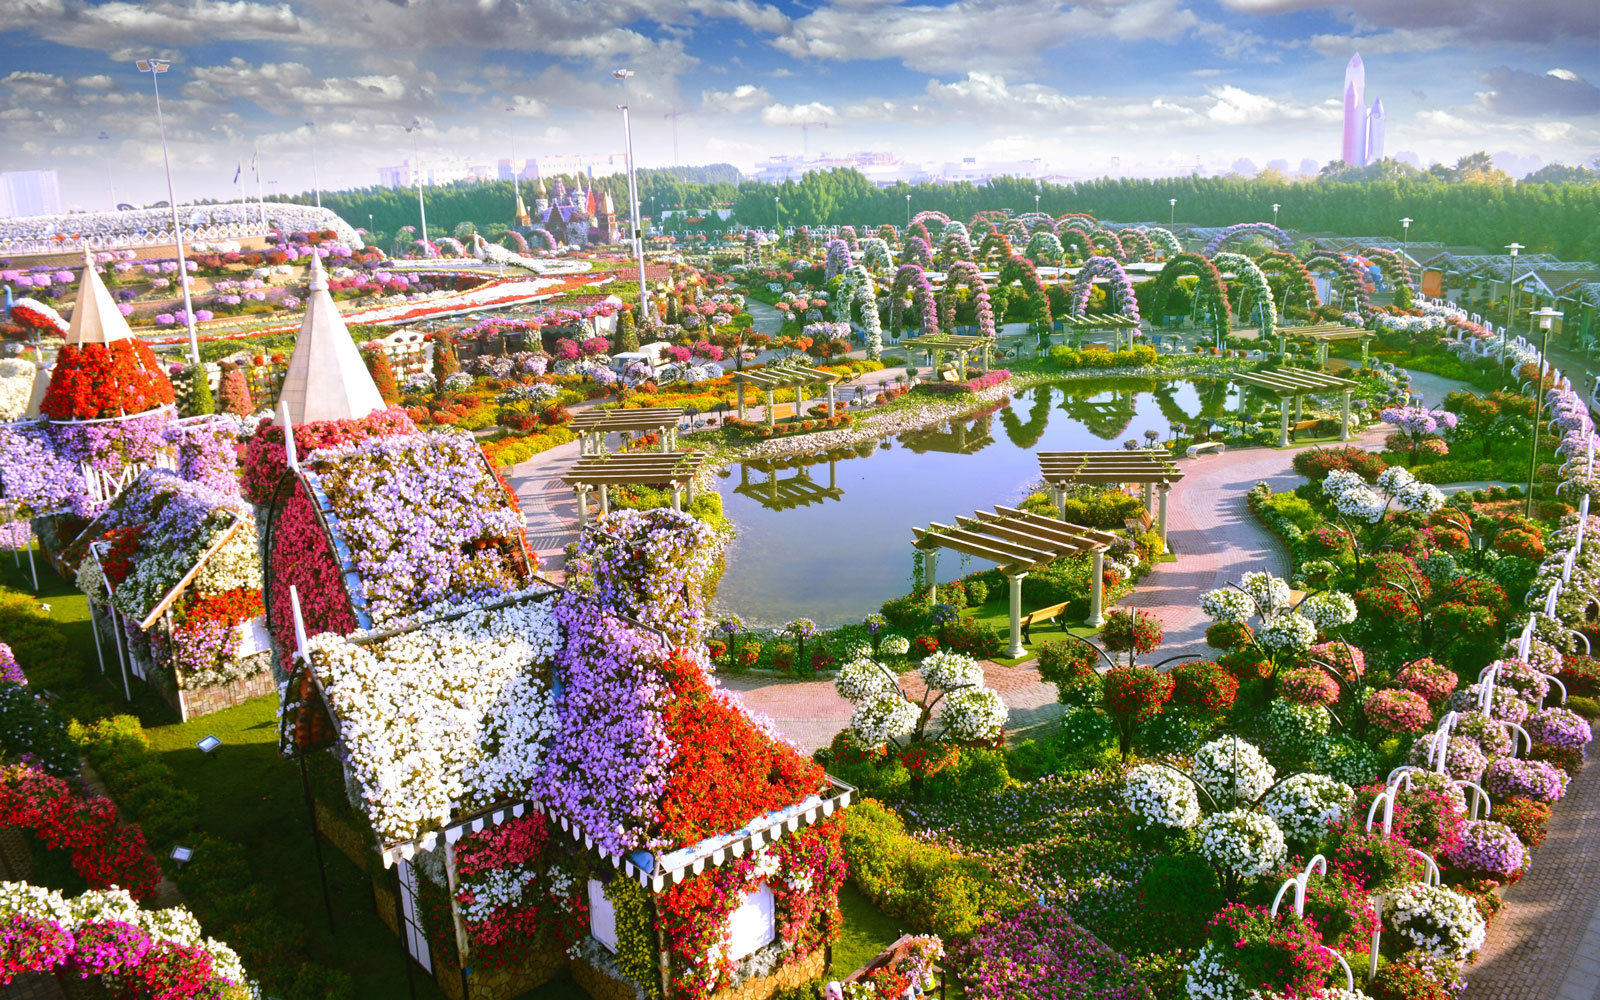 The Worlds Biggest Flower Garden Sits in the Middle of a